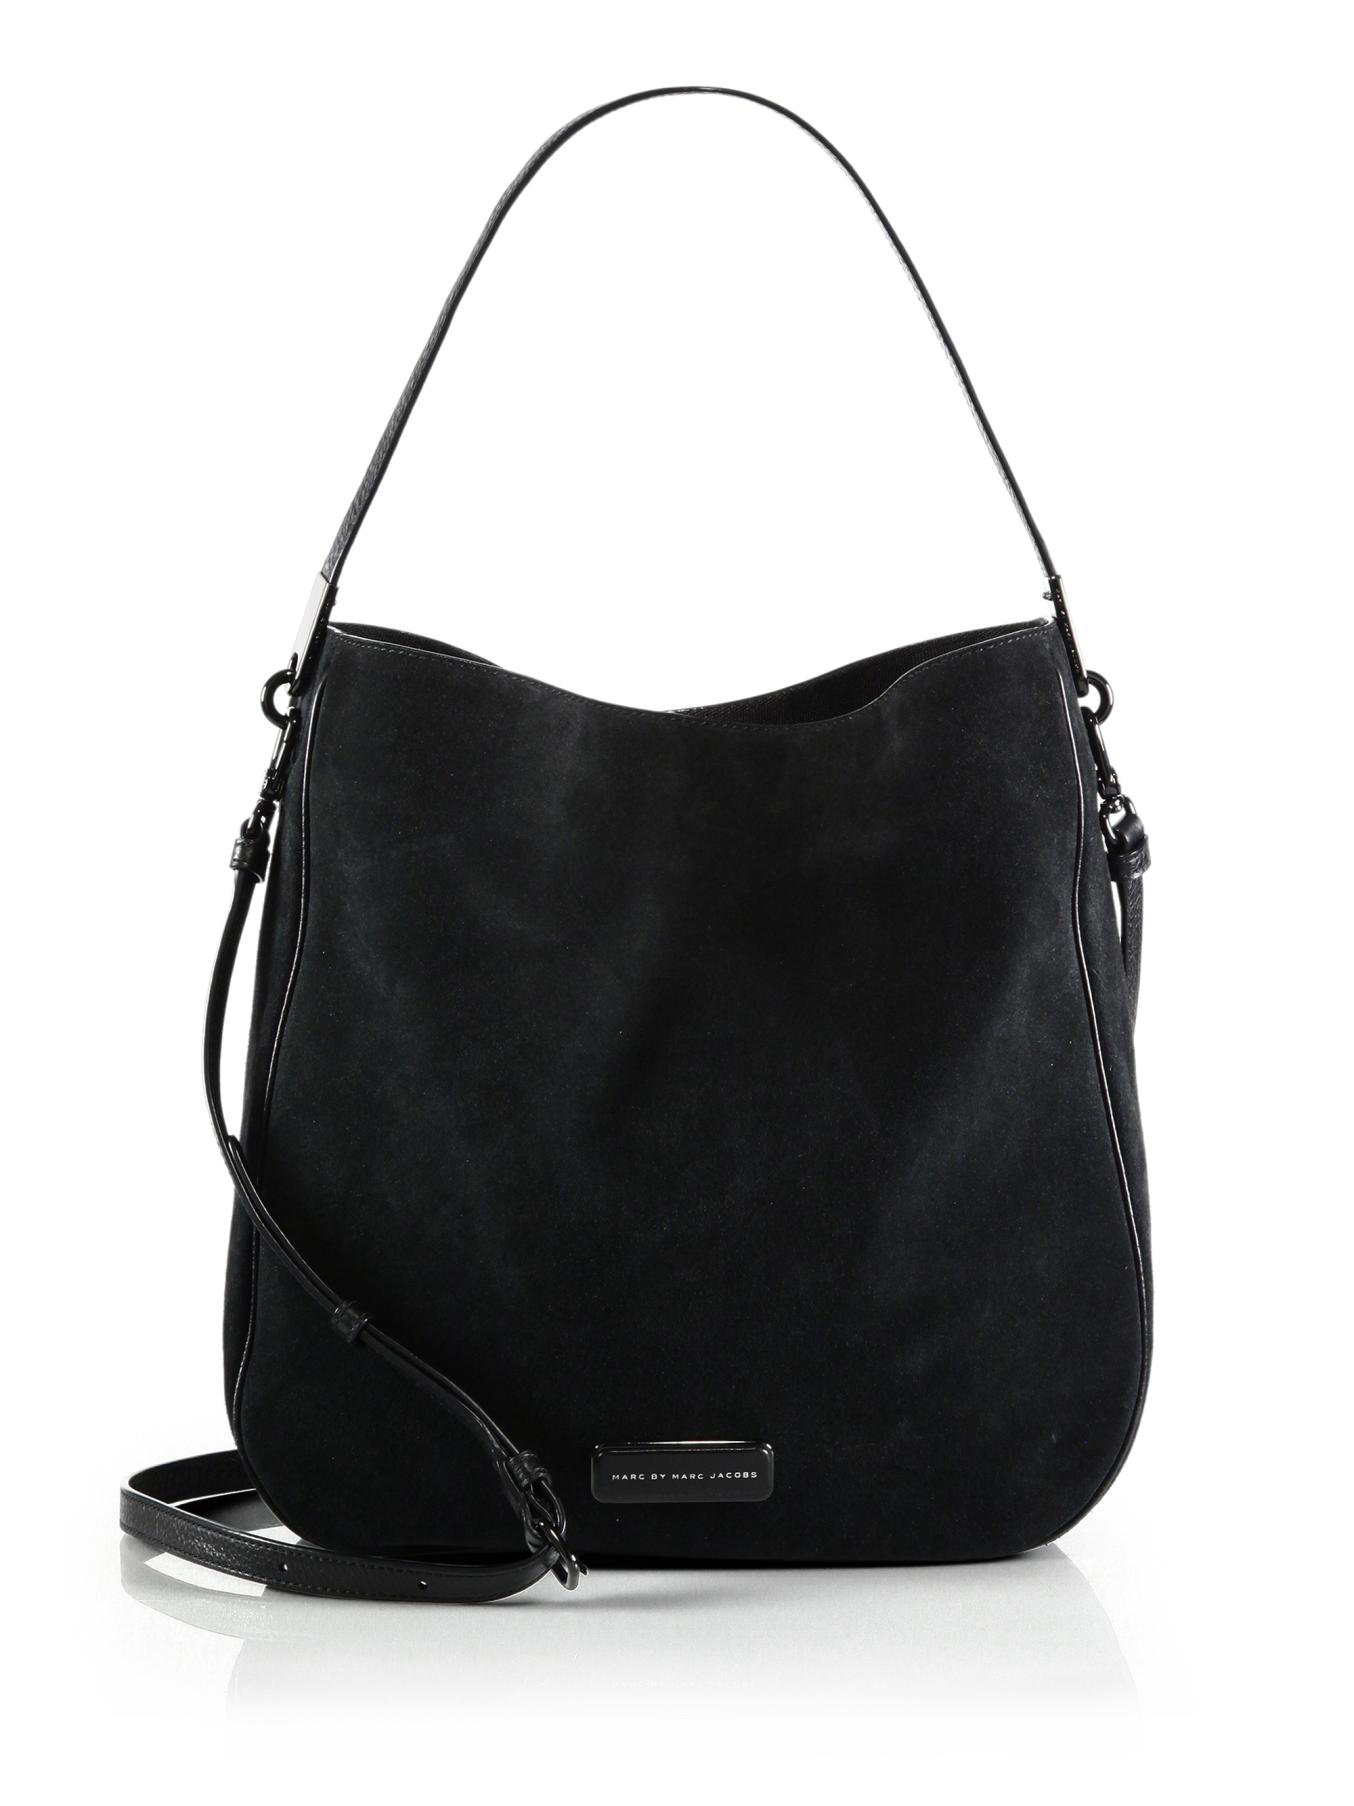 e328bec5e980 Lyst - Marc By Marc Jacobs Ligero Sport Suede Hobo Bag in Black